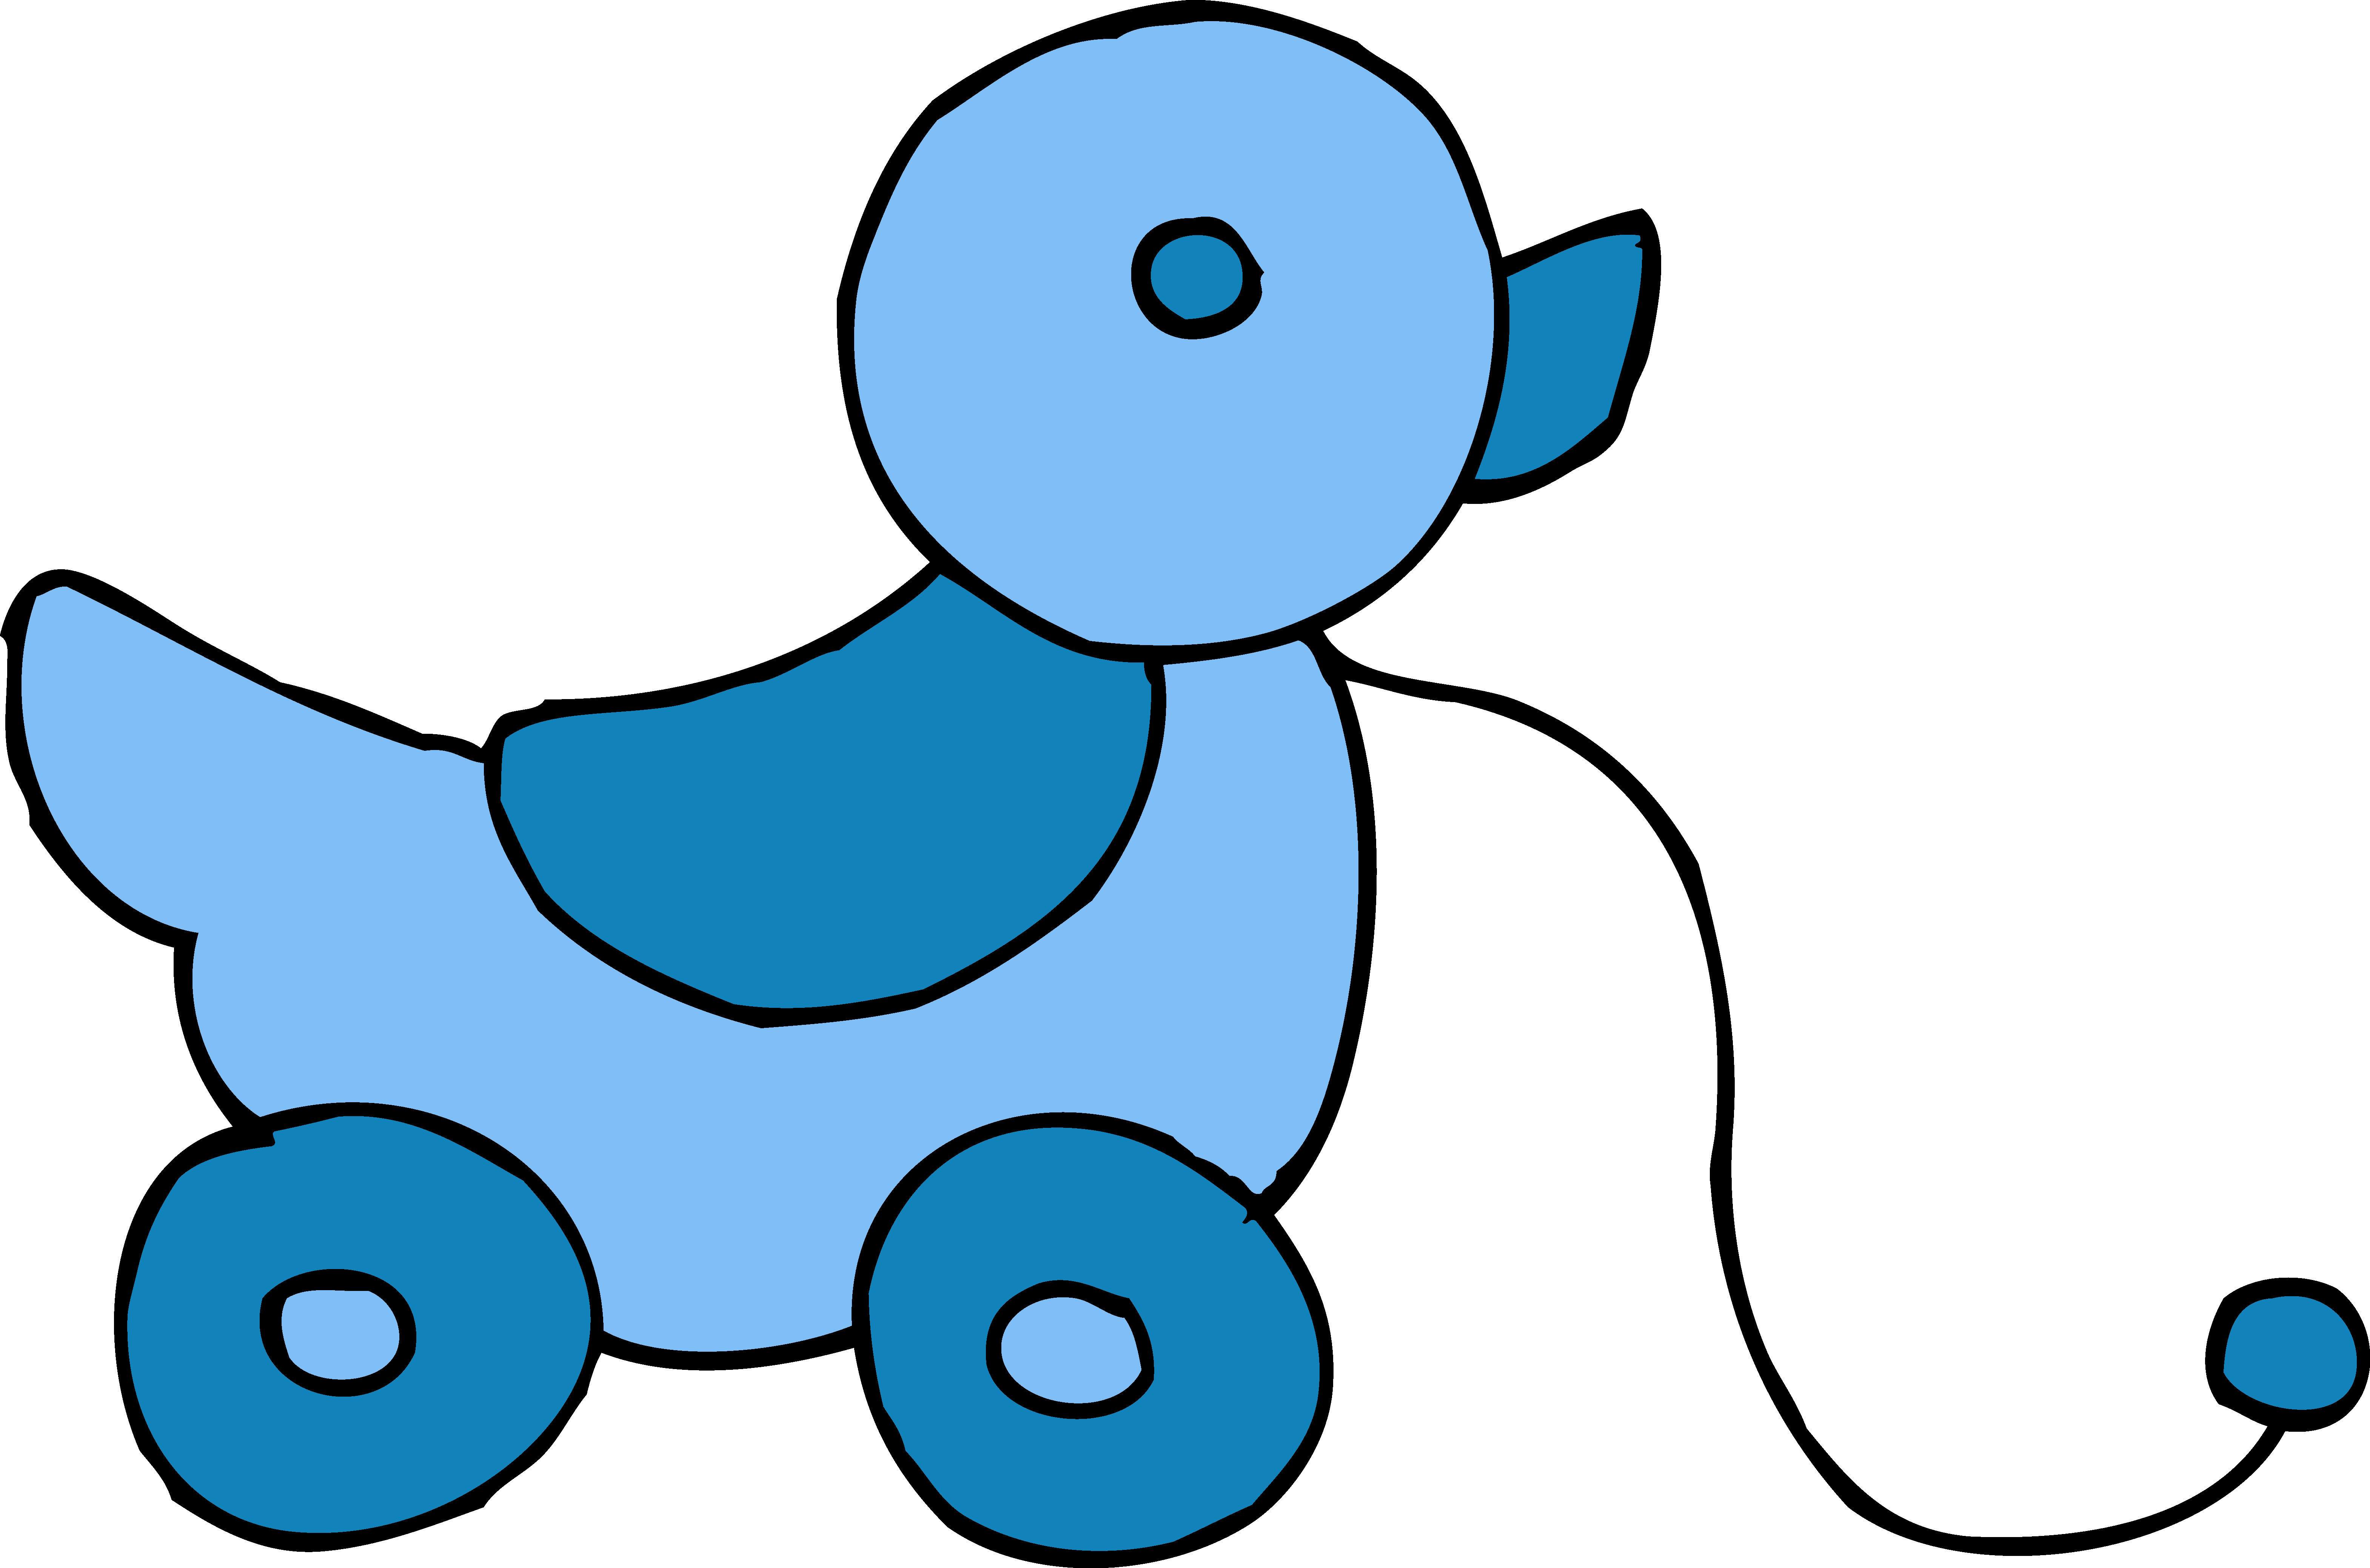 Free Baby Toys Clipart, Download Free Clip Art, Free Clip Art on.